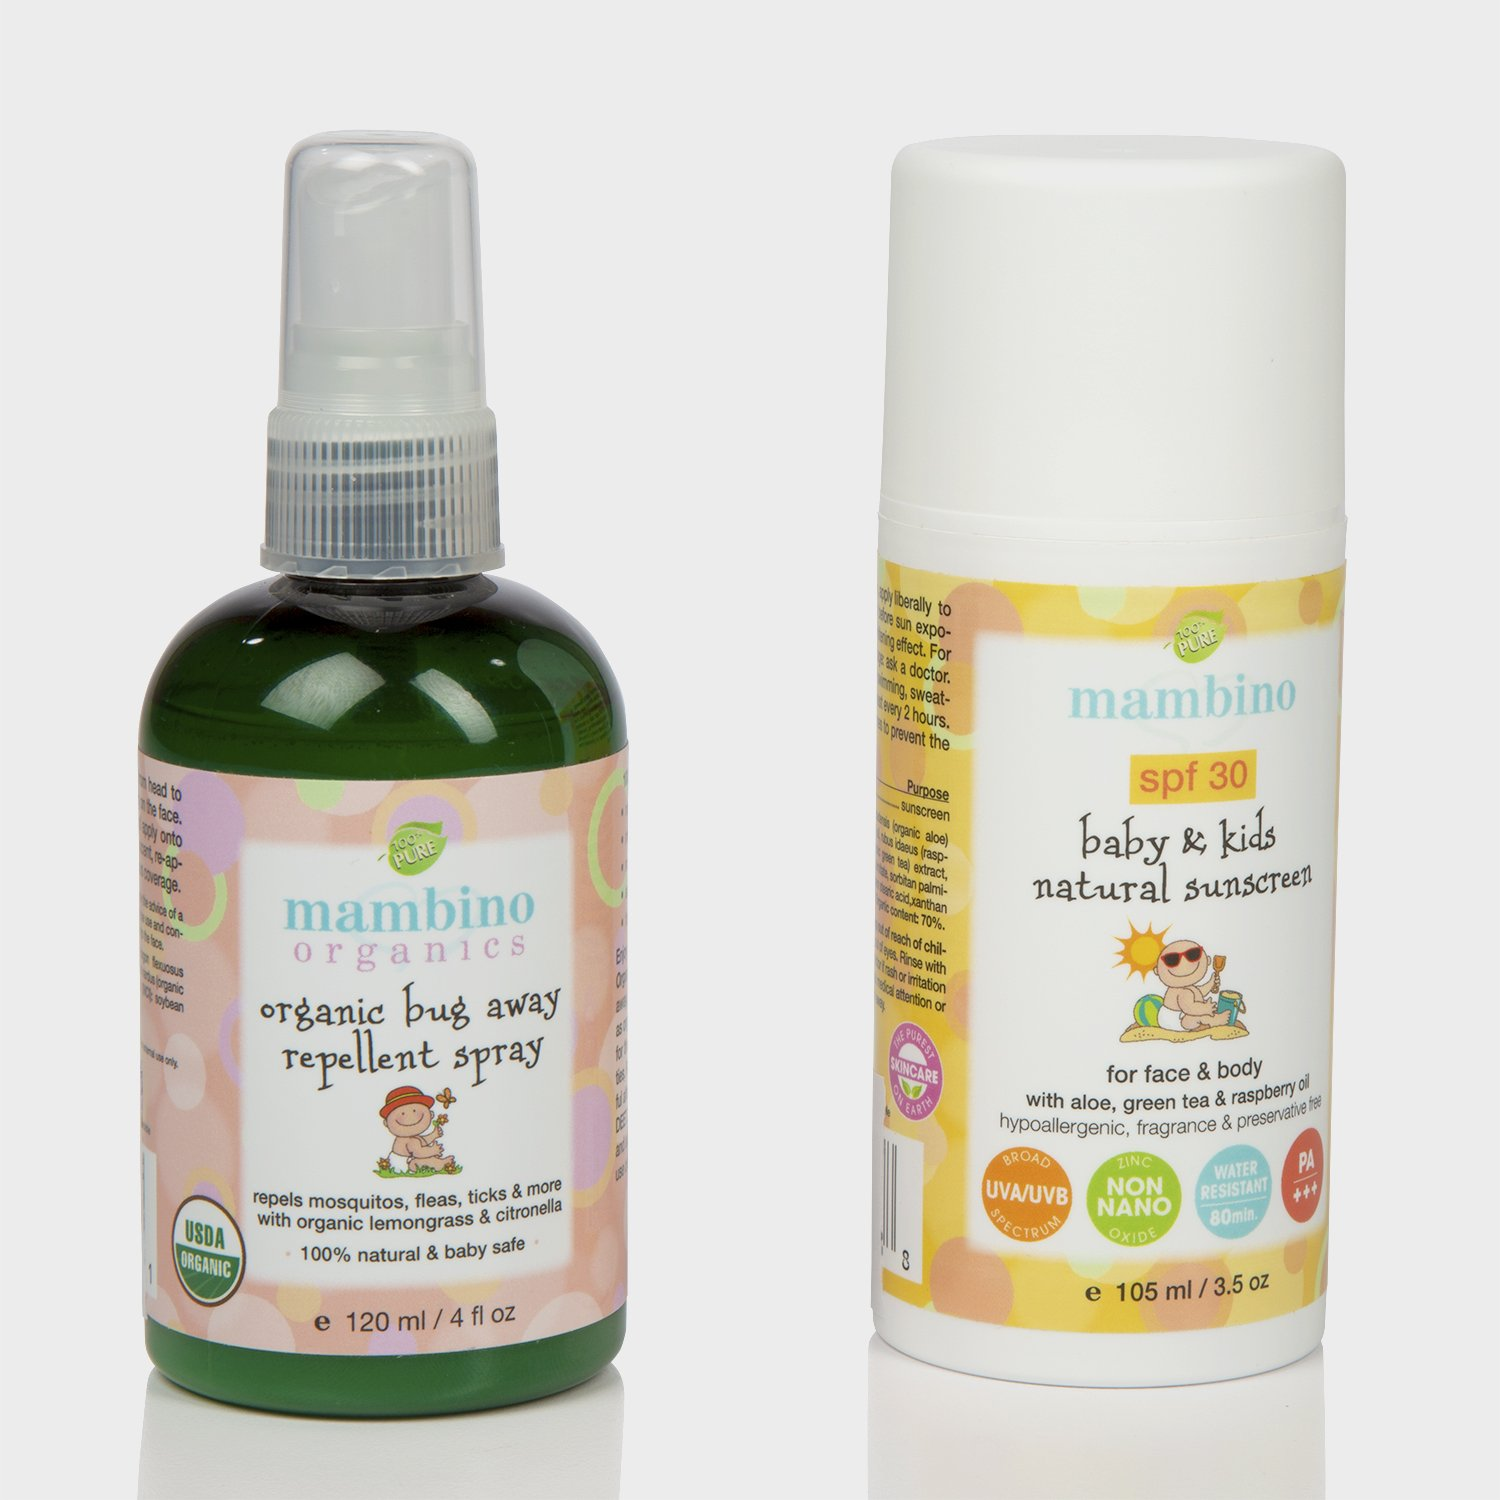 Mambino Organics SPF 30 Baby & Kids Natural Mineral Sunscreen, 3.5 oz with Mambino Organics Bug Away Insect Repellent Spray, 4 Fluid Ounce